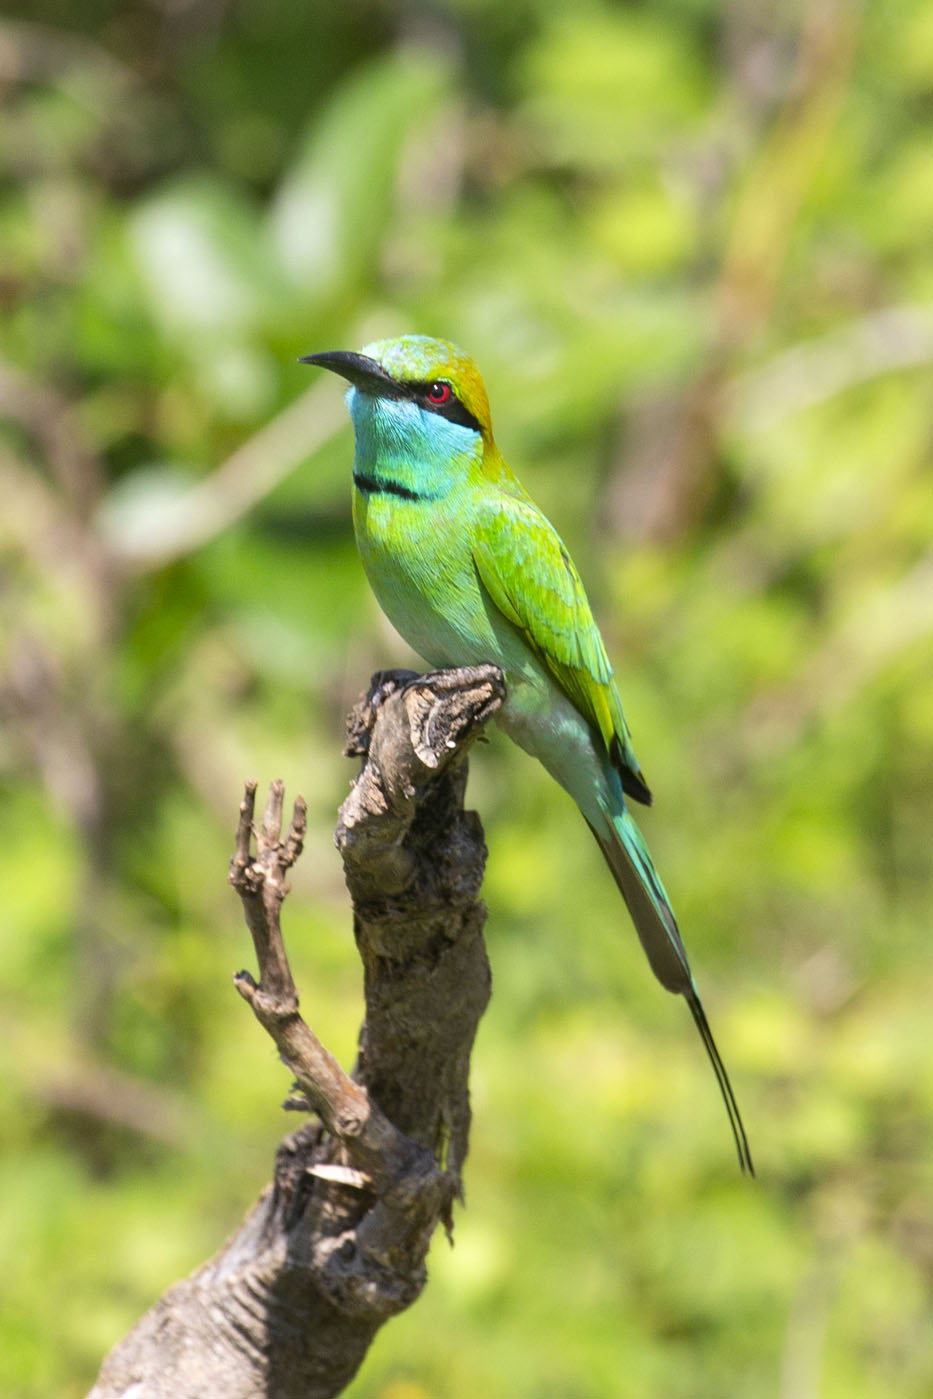 Bee-eater in the bright sunlight in Uda Walawe | Uda Walawe safari | Sri Lanka